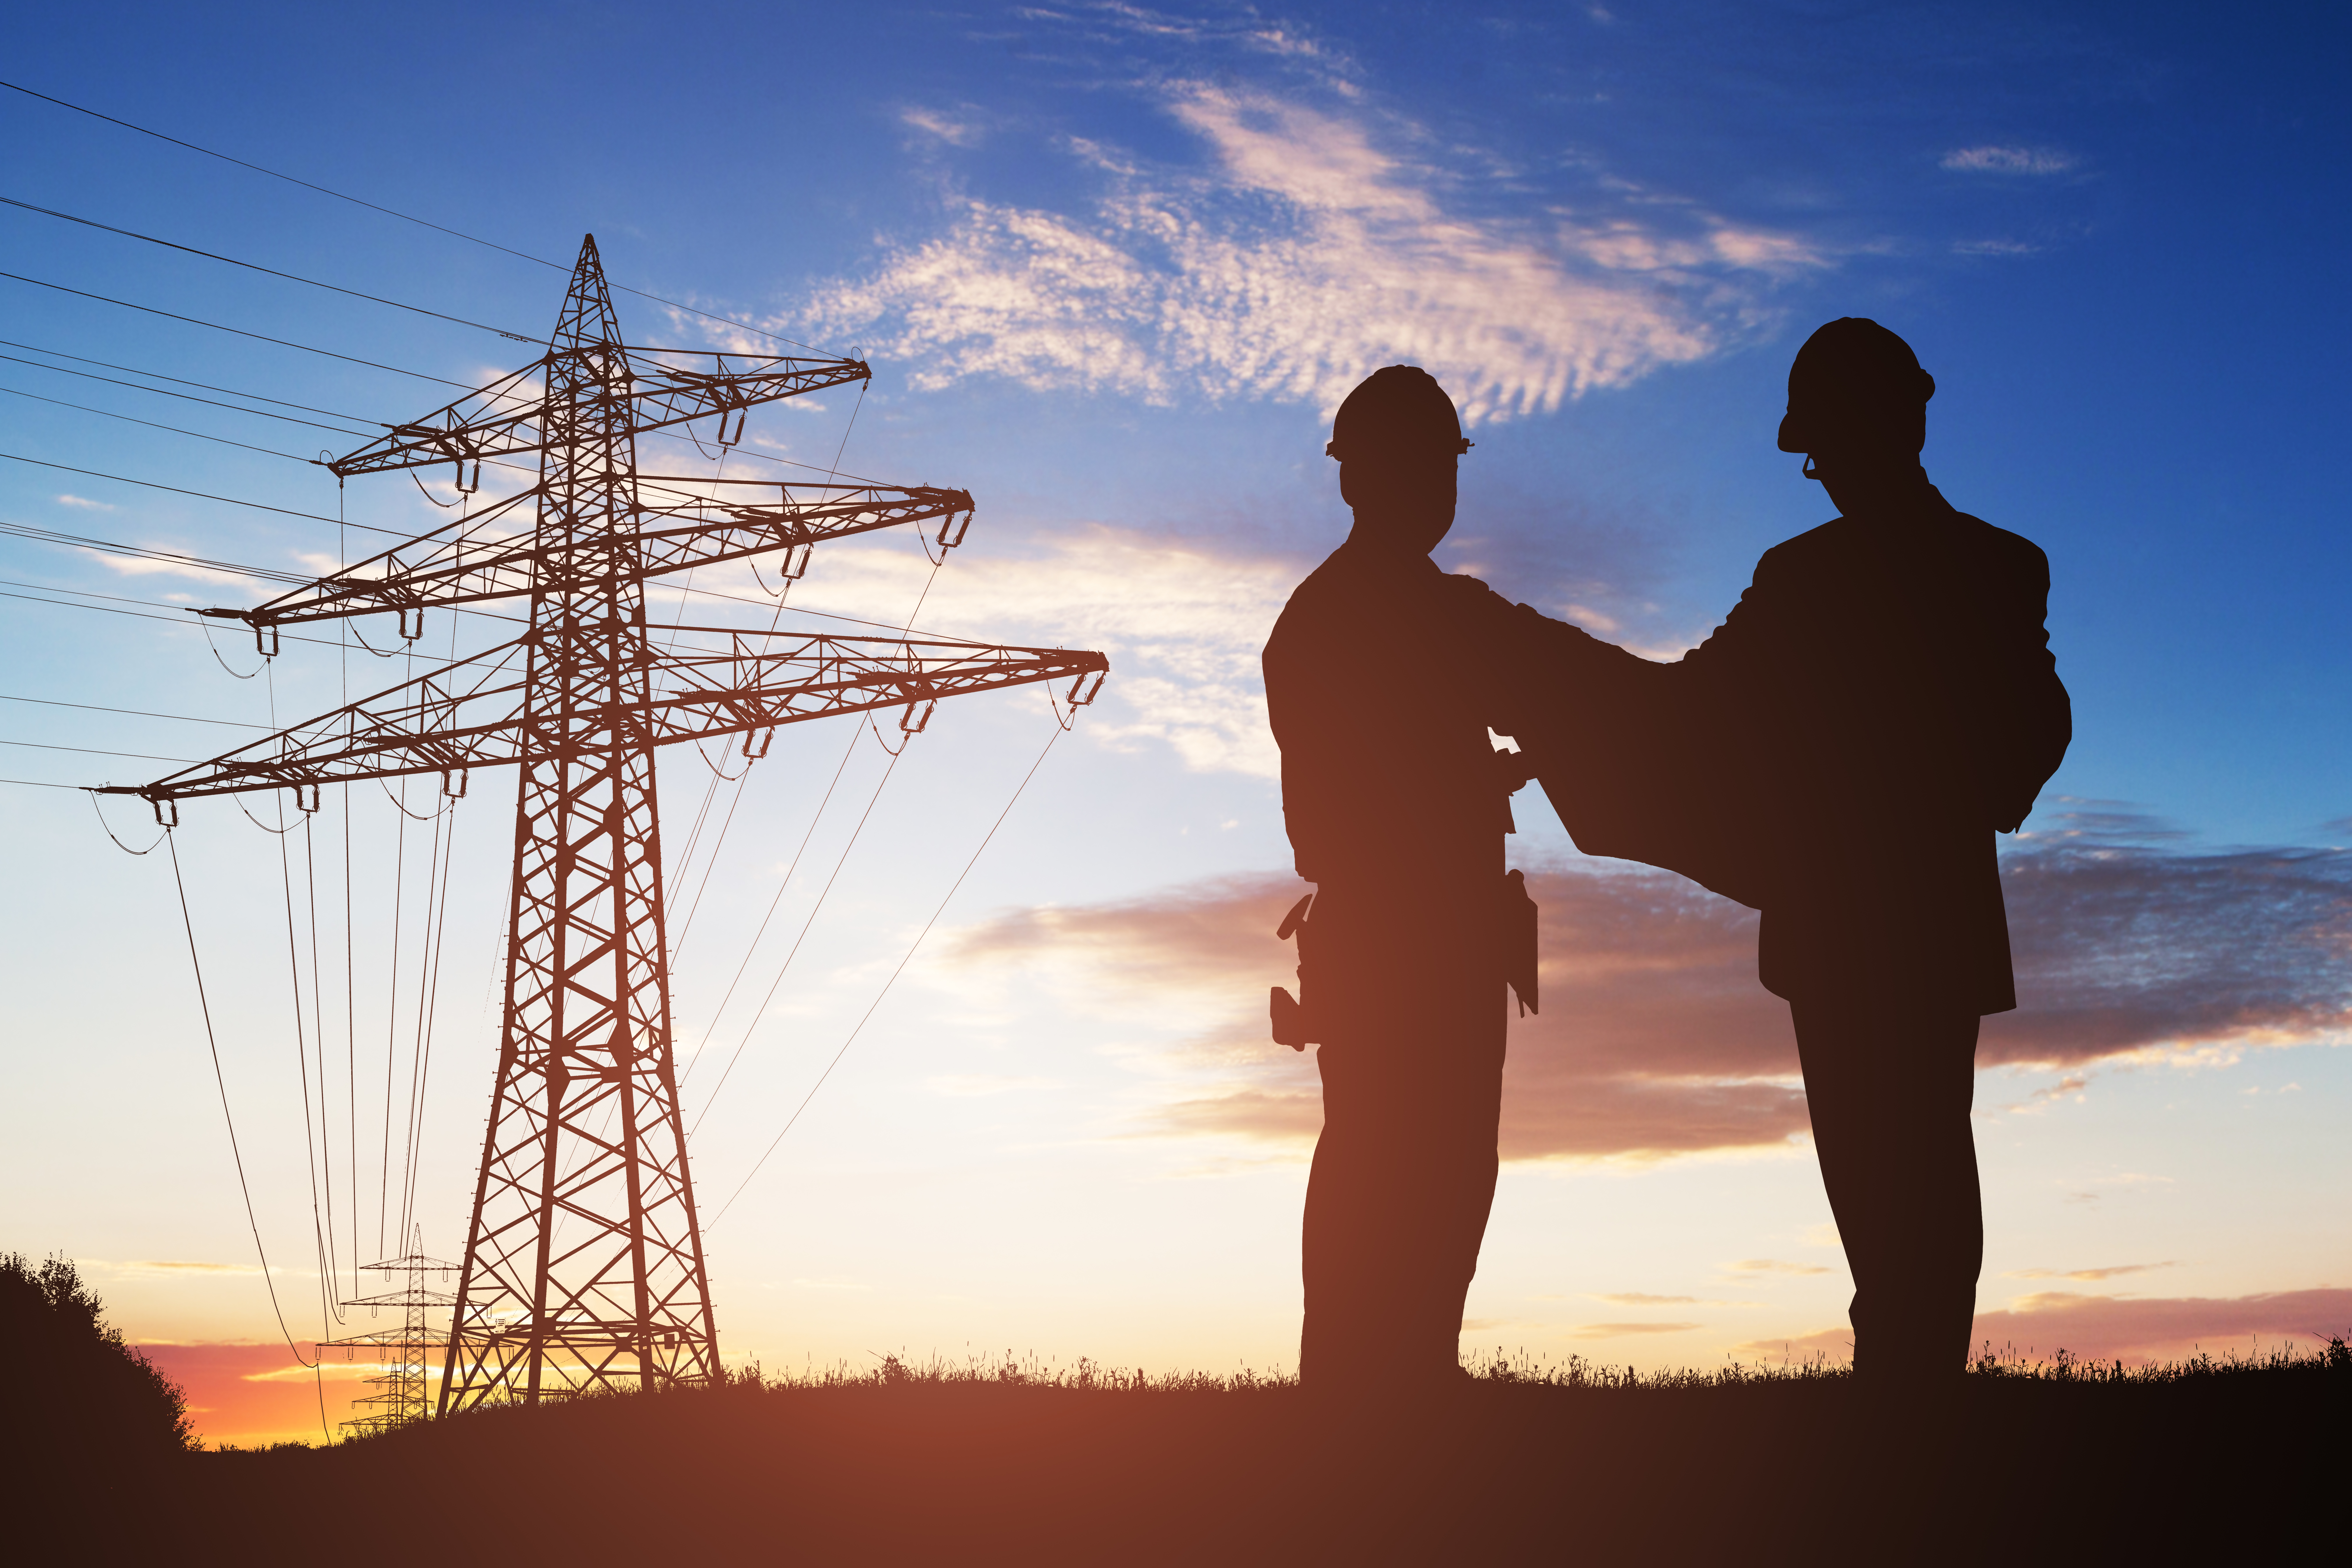 Silhouette Of Two Engineers Discussing Together